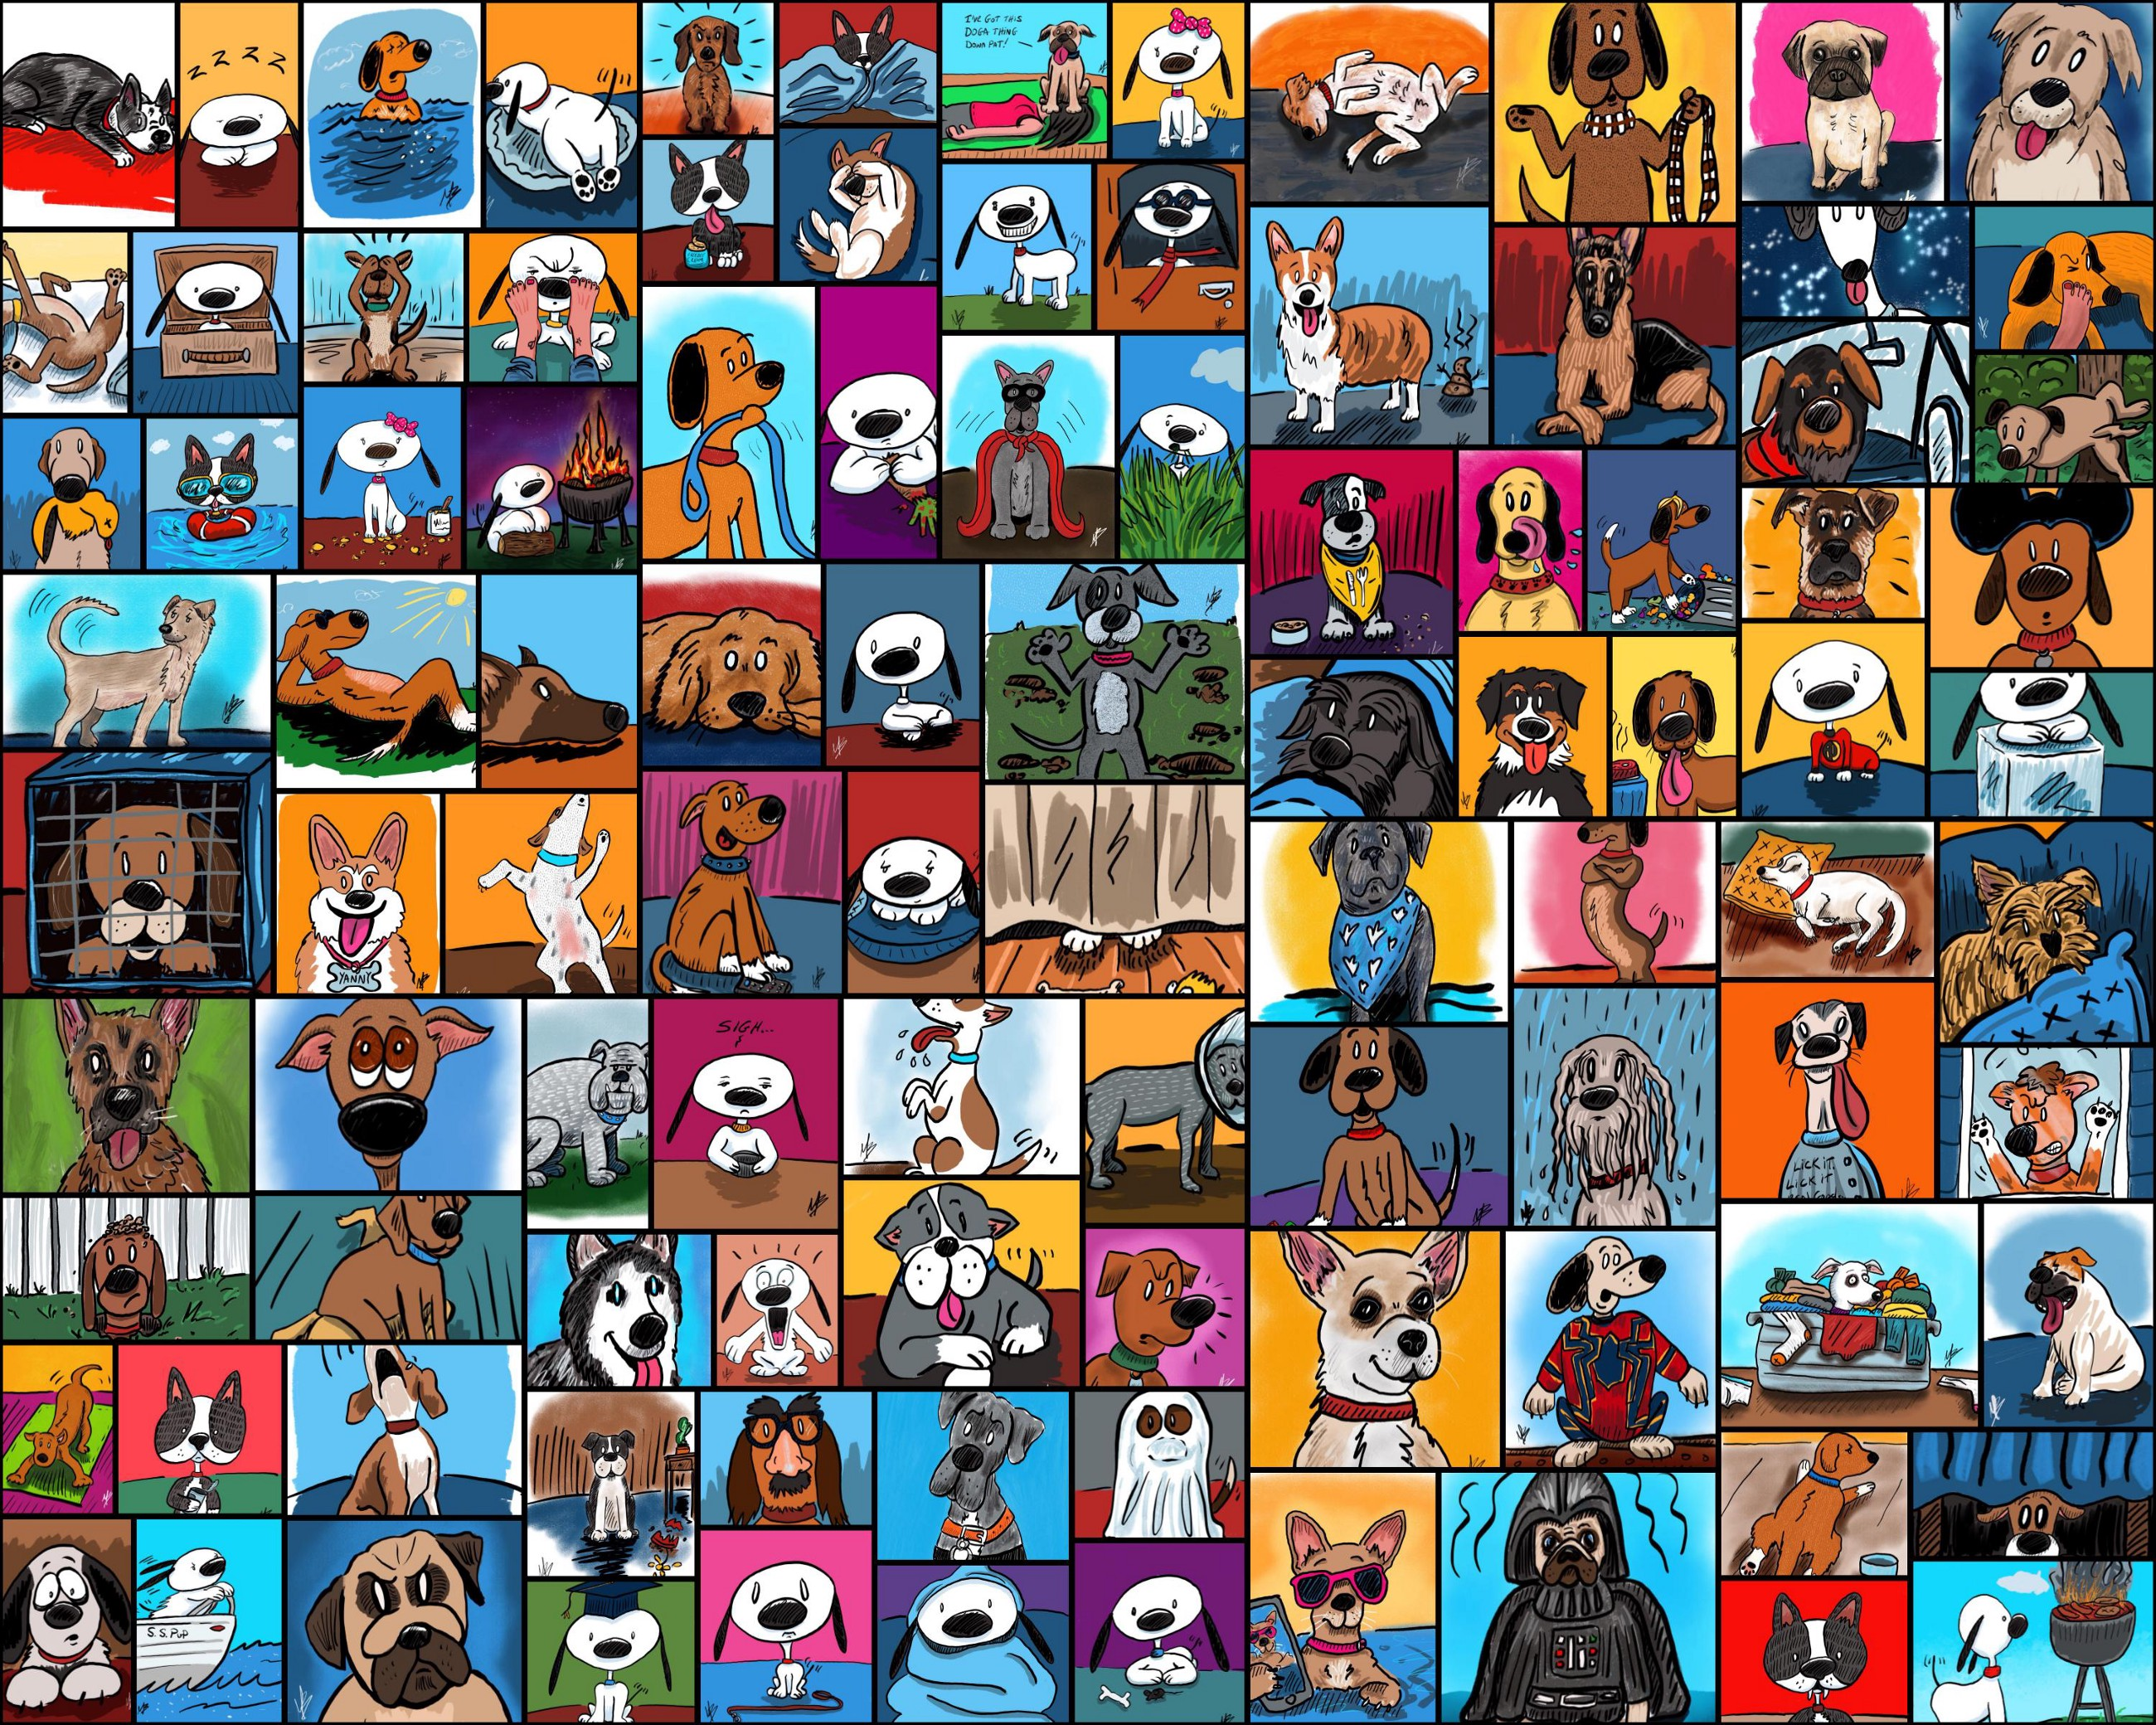 Png My 100 Day Project 100 Days Of Cartoon Dogs Art Marketing My 100 Day Project 100 Days Of Cartoon Dogs Art Marketing